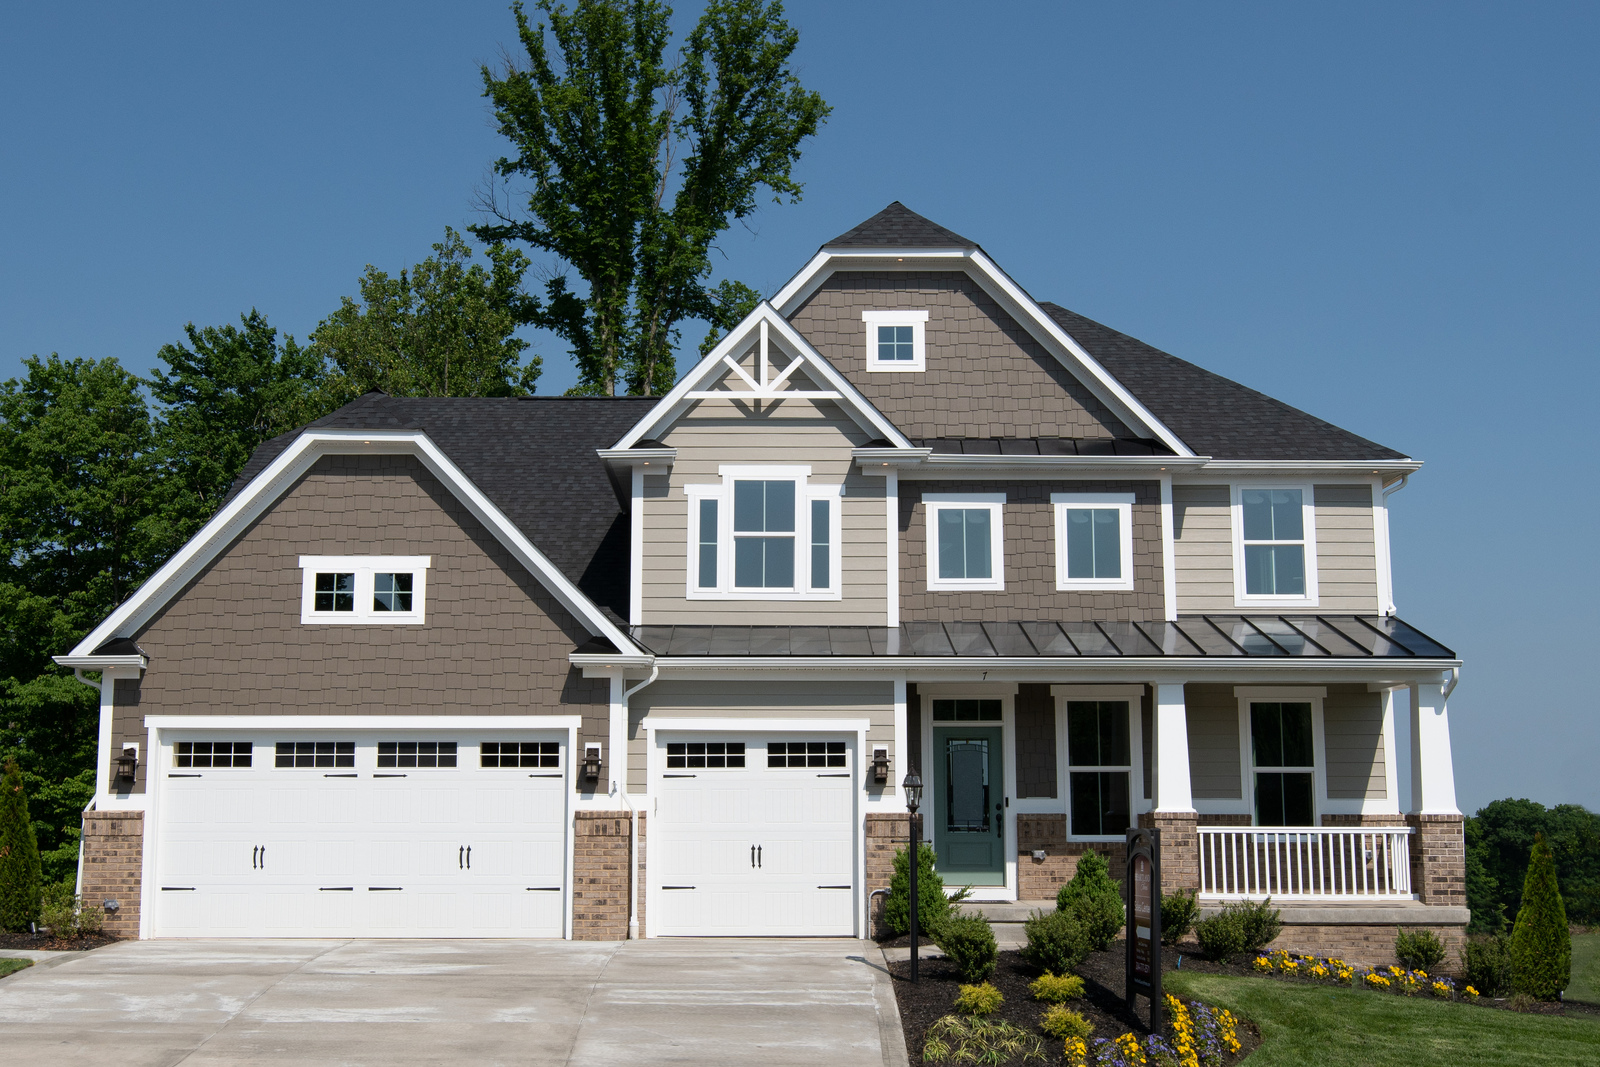 Many of our floorplans include, or are available with a 3-car garage. Finally, a place for everything! Come learn more about the home designs today.